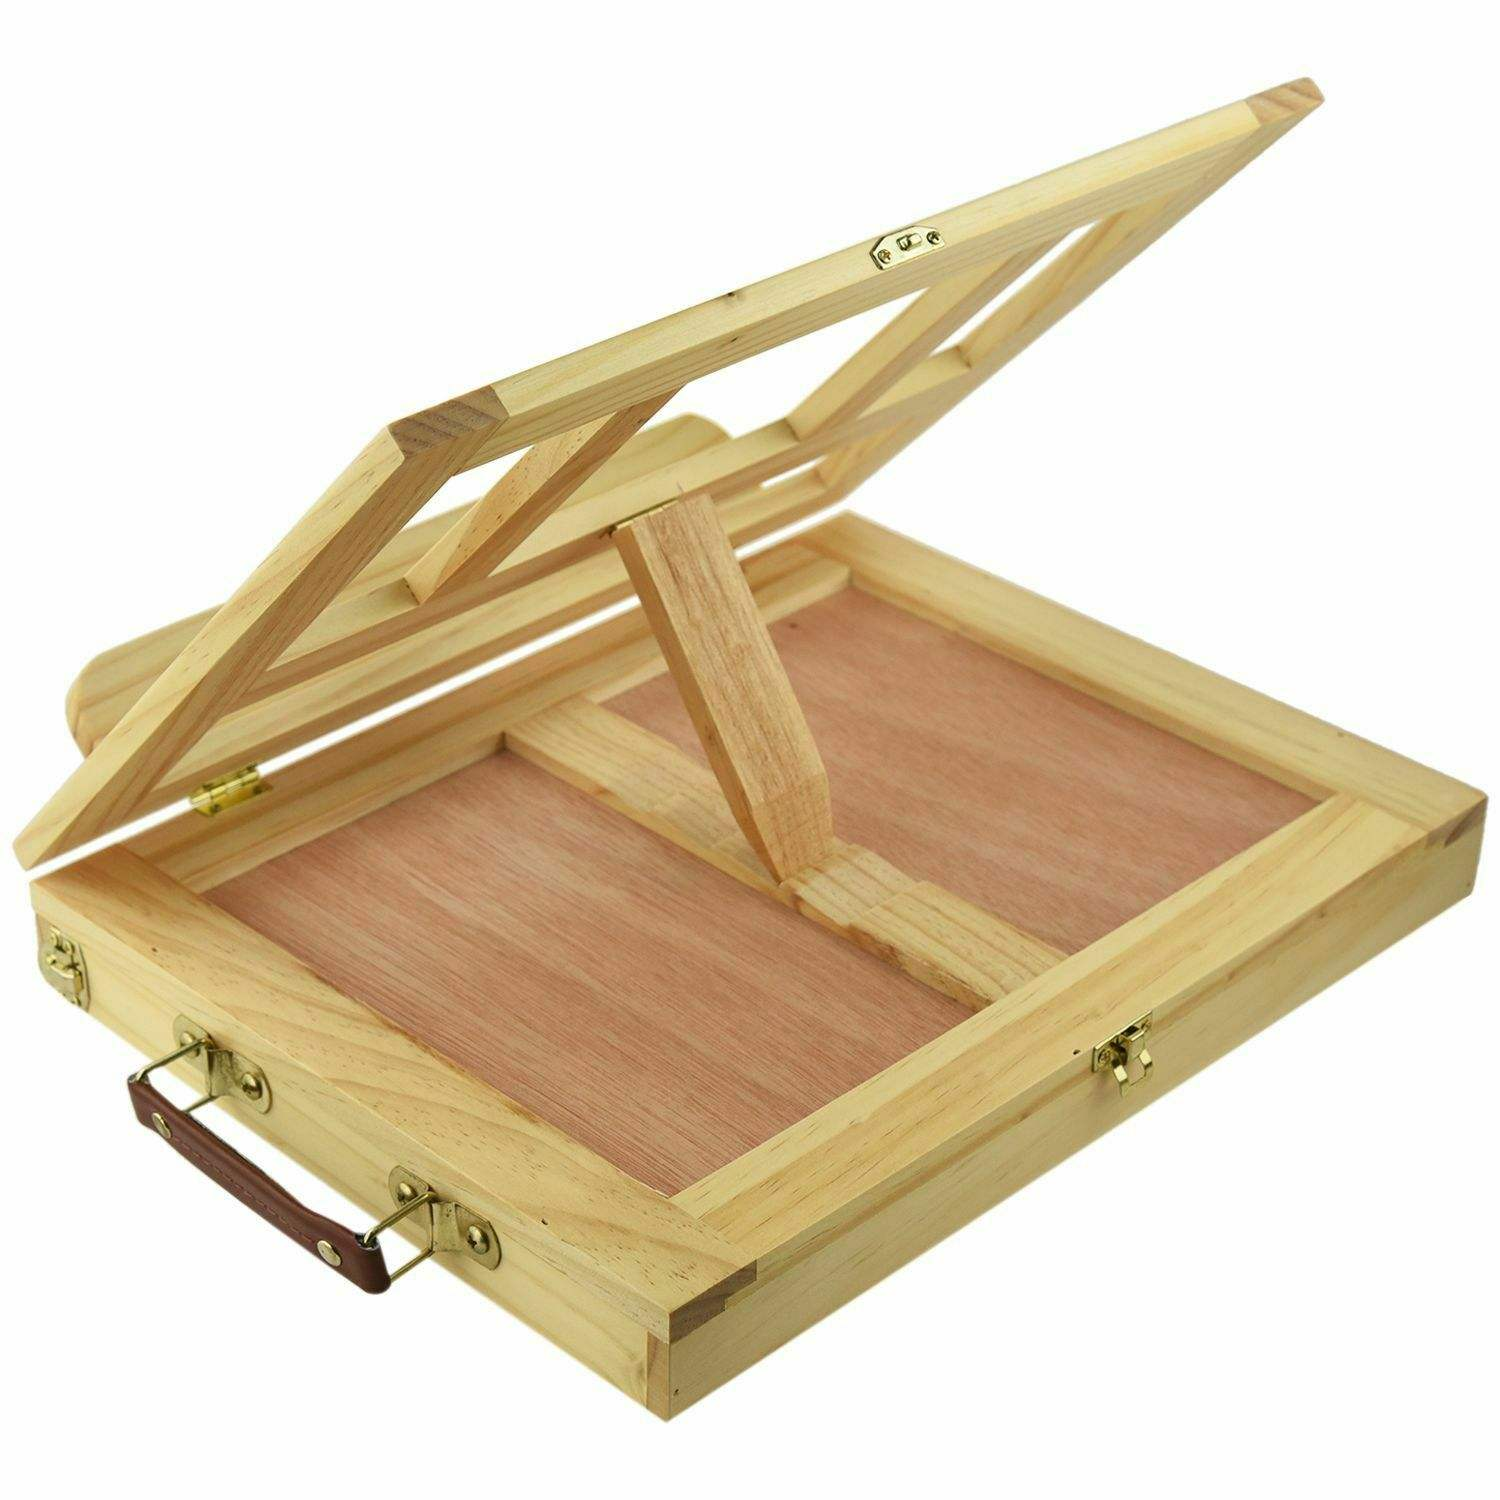 Travel Folding Table Wood Easel with Compartments For Artist Painting Sketching